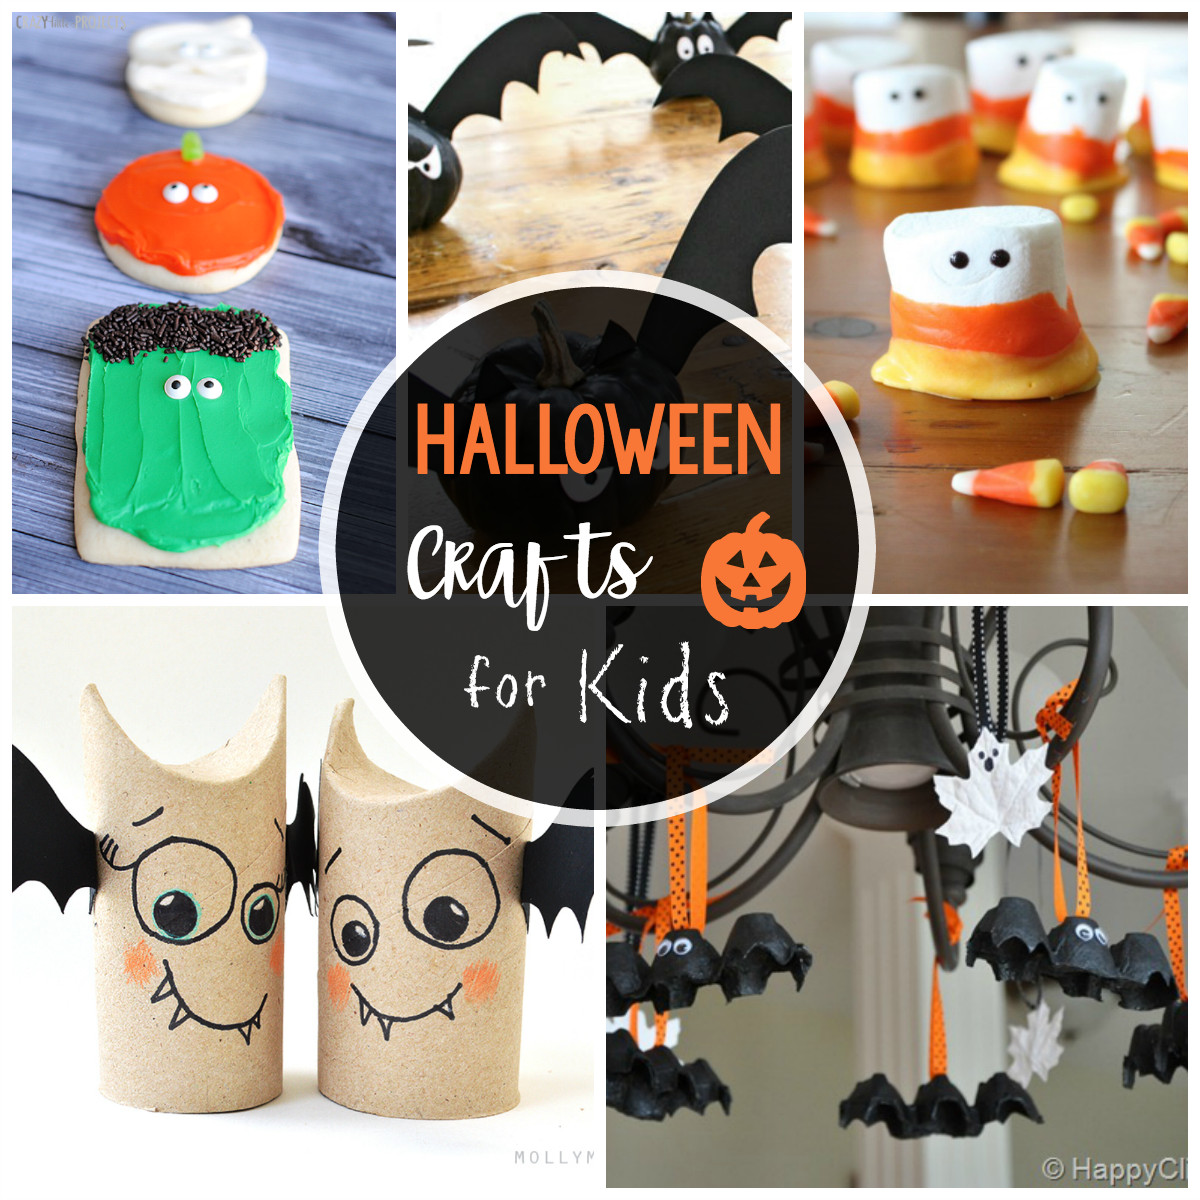 Best ideas about Halloween Craft Ideas For Kindergarteners . Save or Pin 25 Cute & Easy Halloween Crafts for Kids Crazy Little Now.